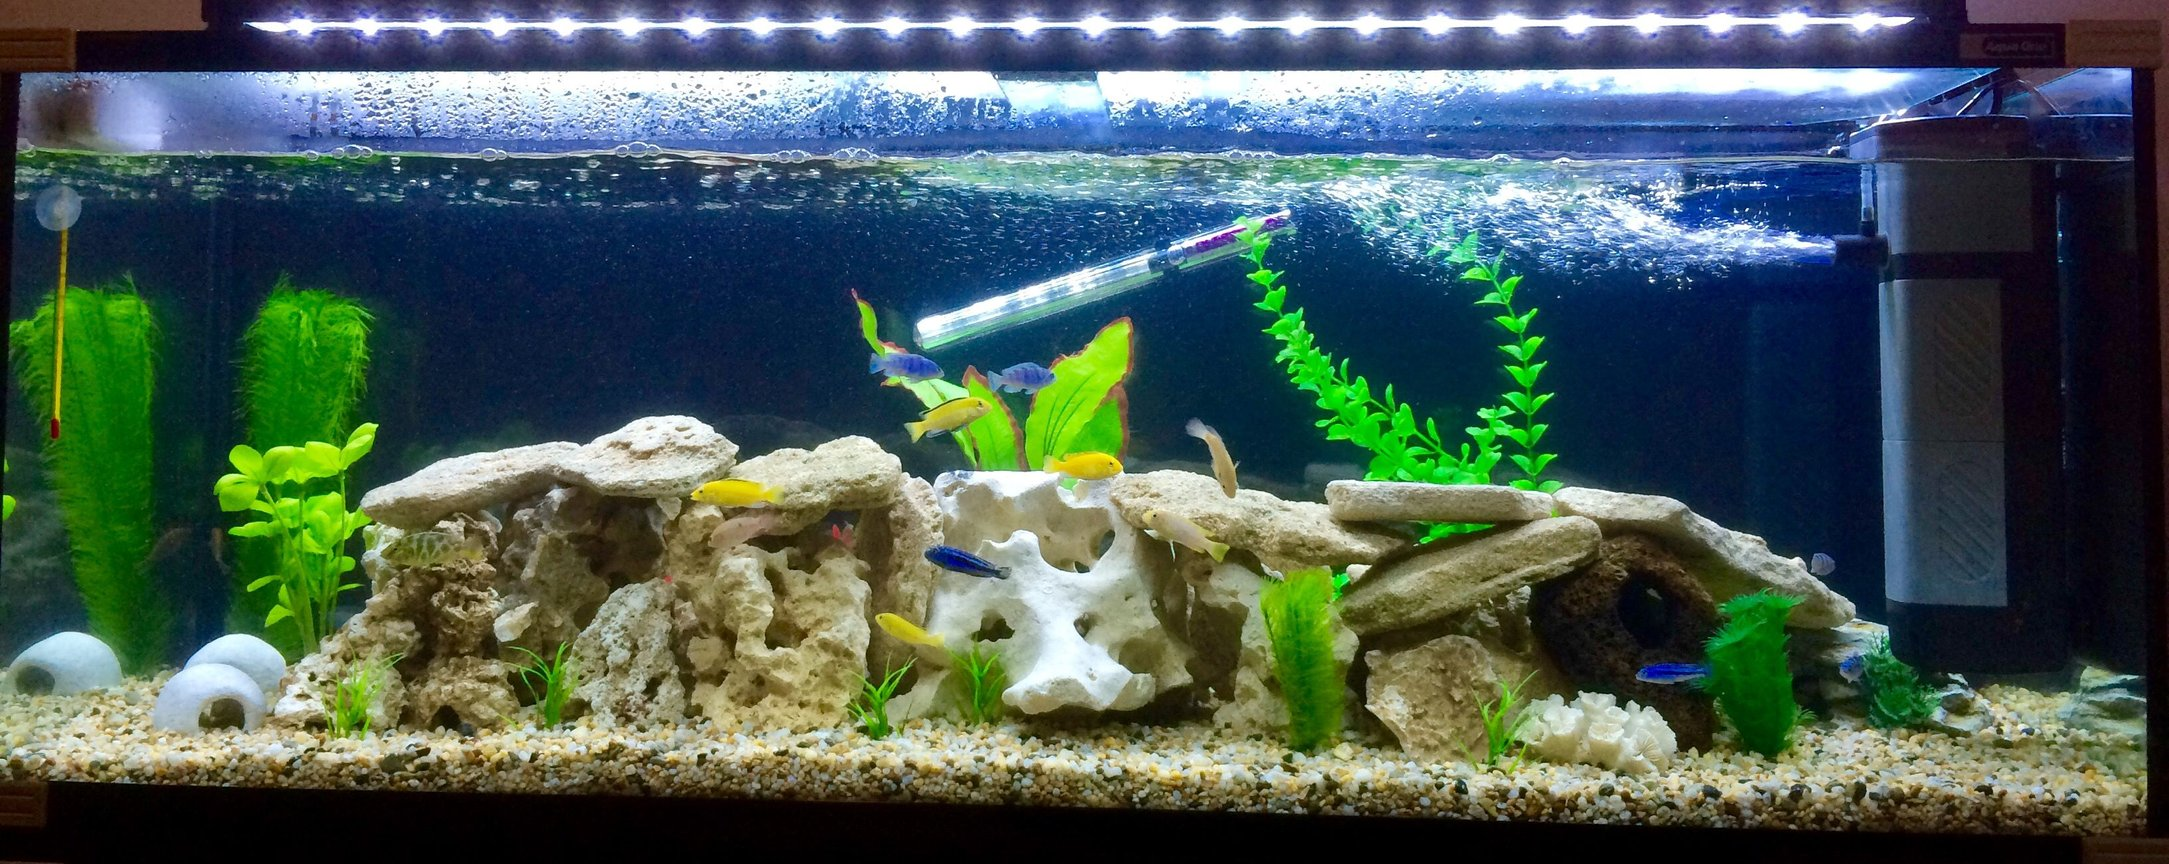 50 gallons freshwater fish tank (mostly fish and non-living decorations) - Cichlids